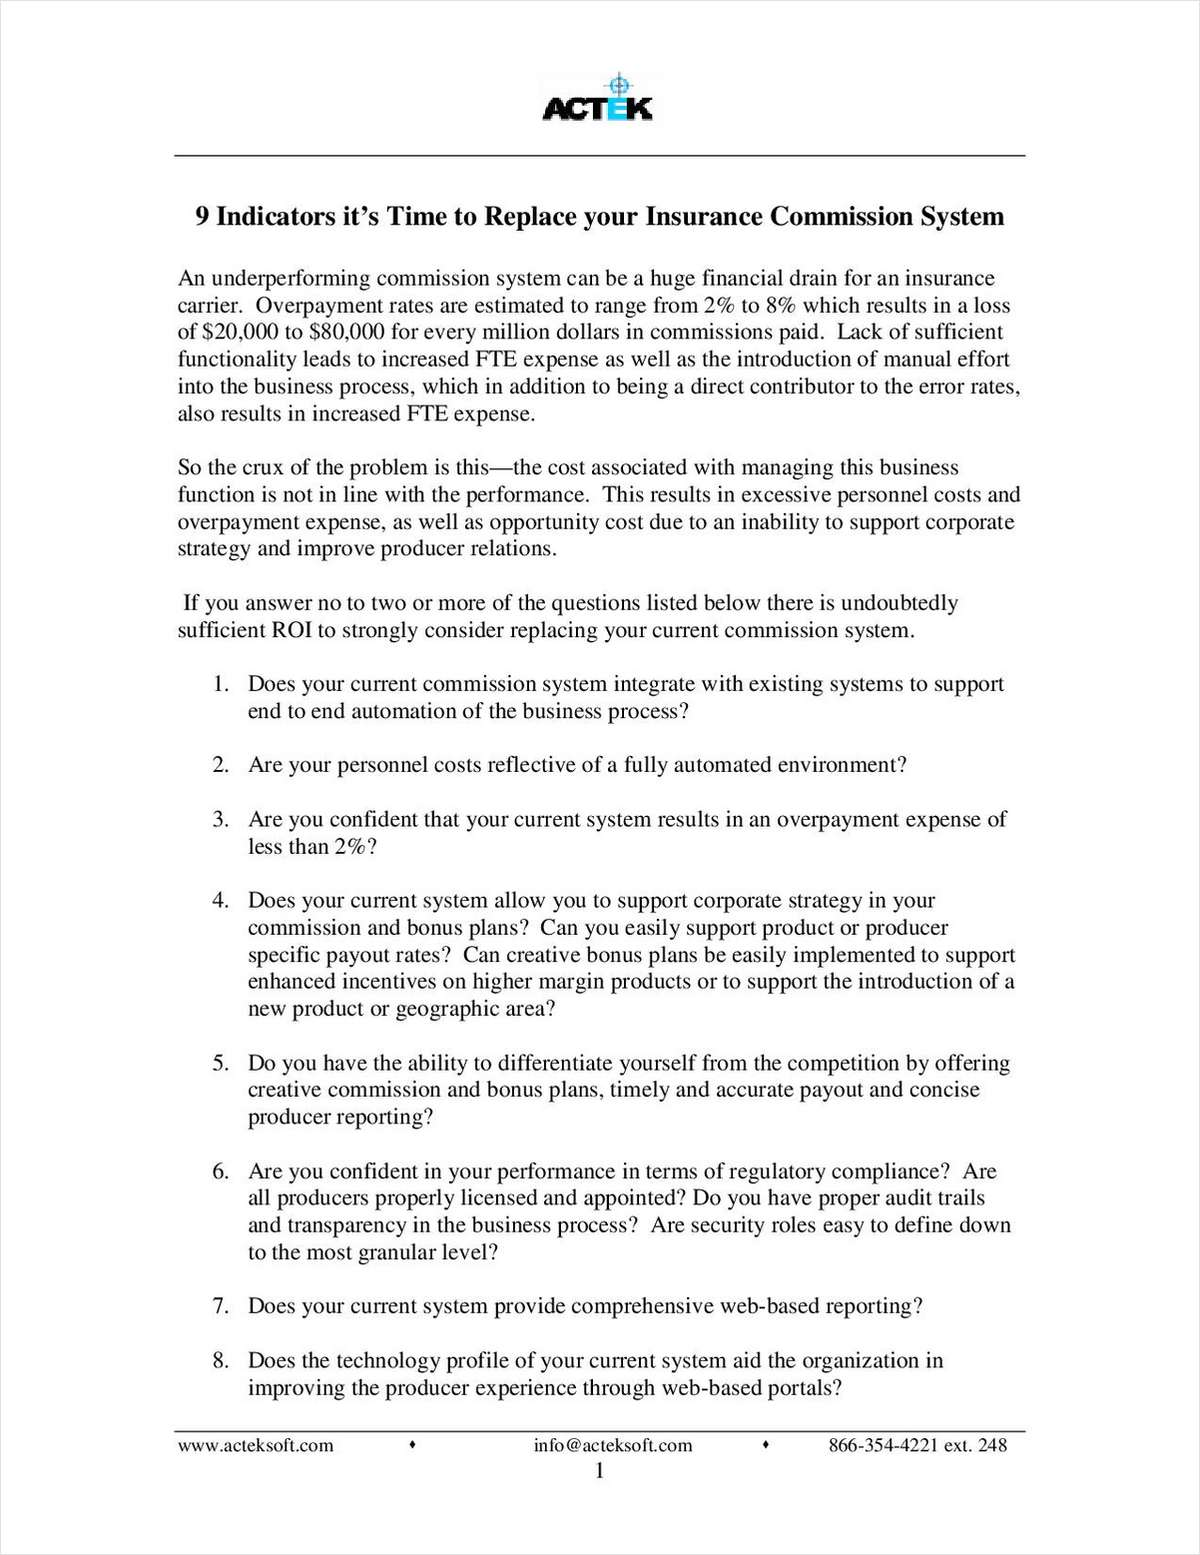 9 Indicators that it's Time to Replace Your Insurance Commission System